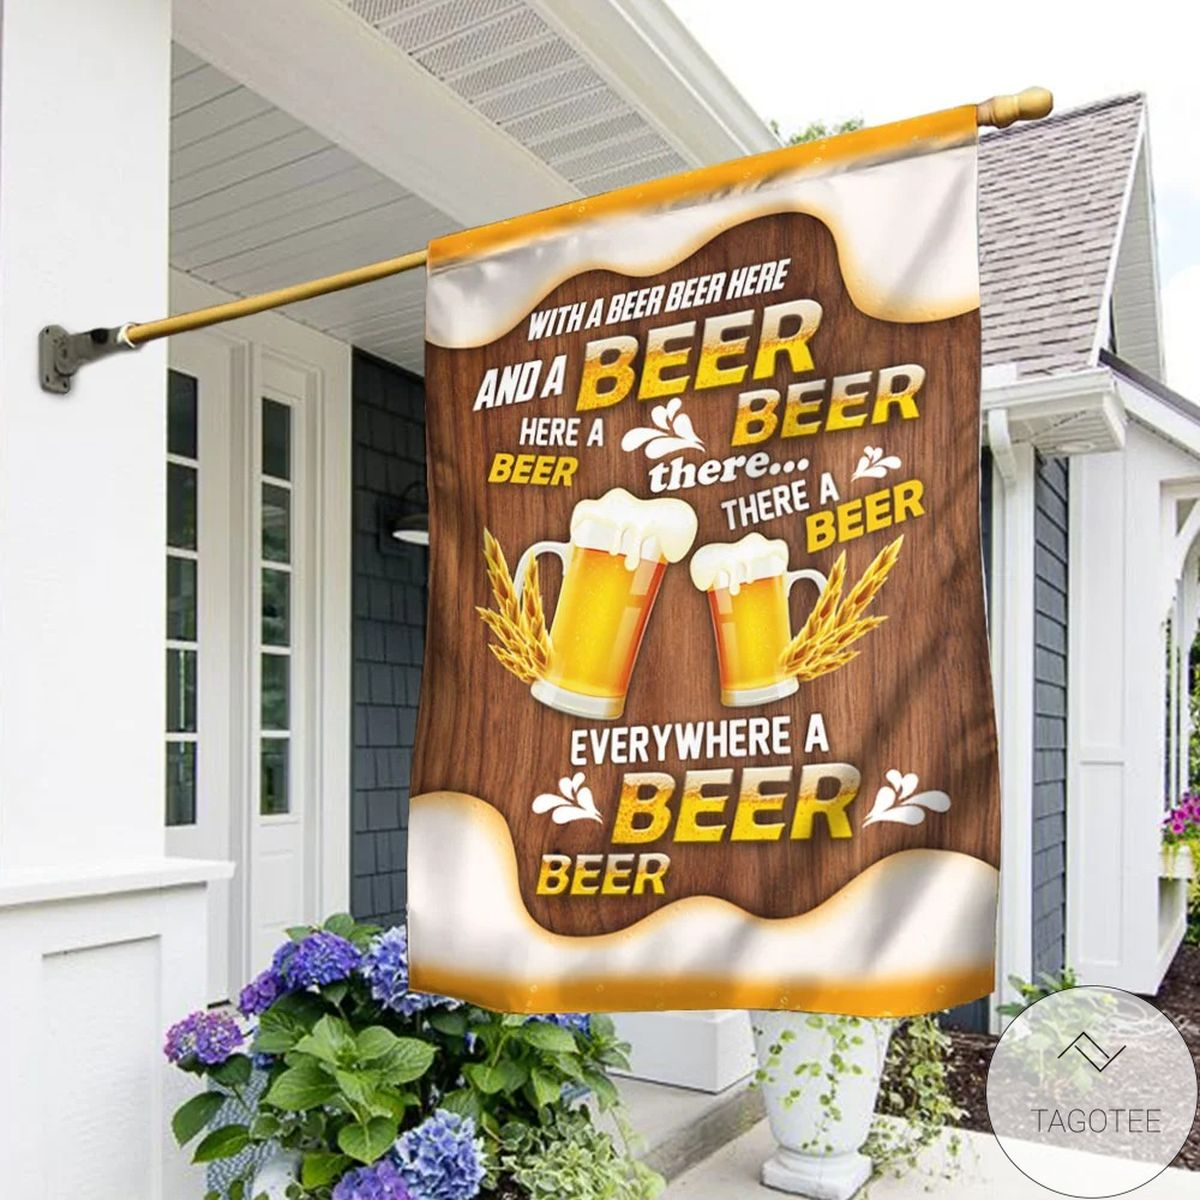 With A Beer Beer Here And A Beer Beer There House Flag